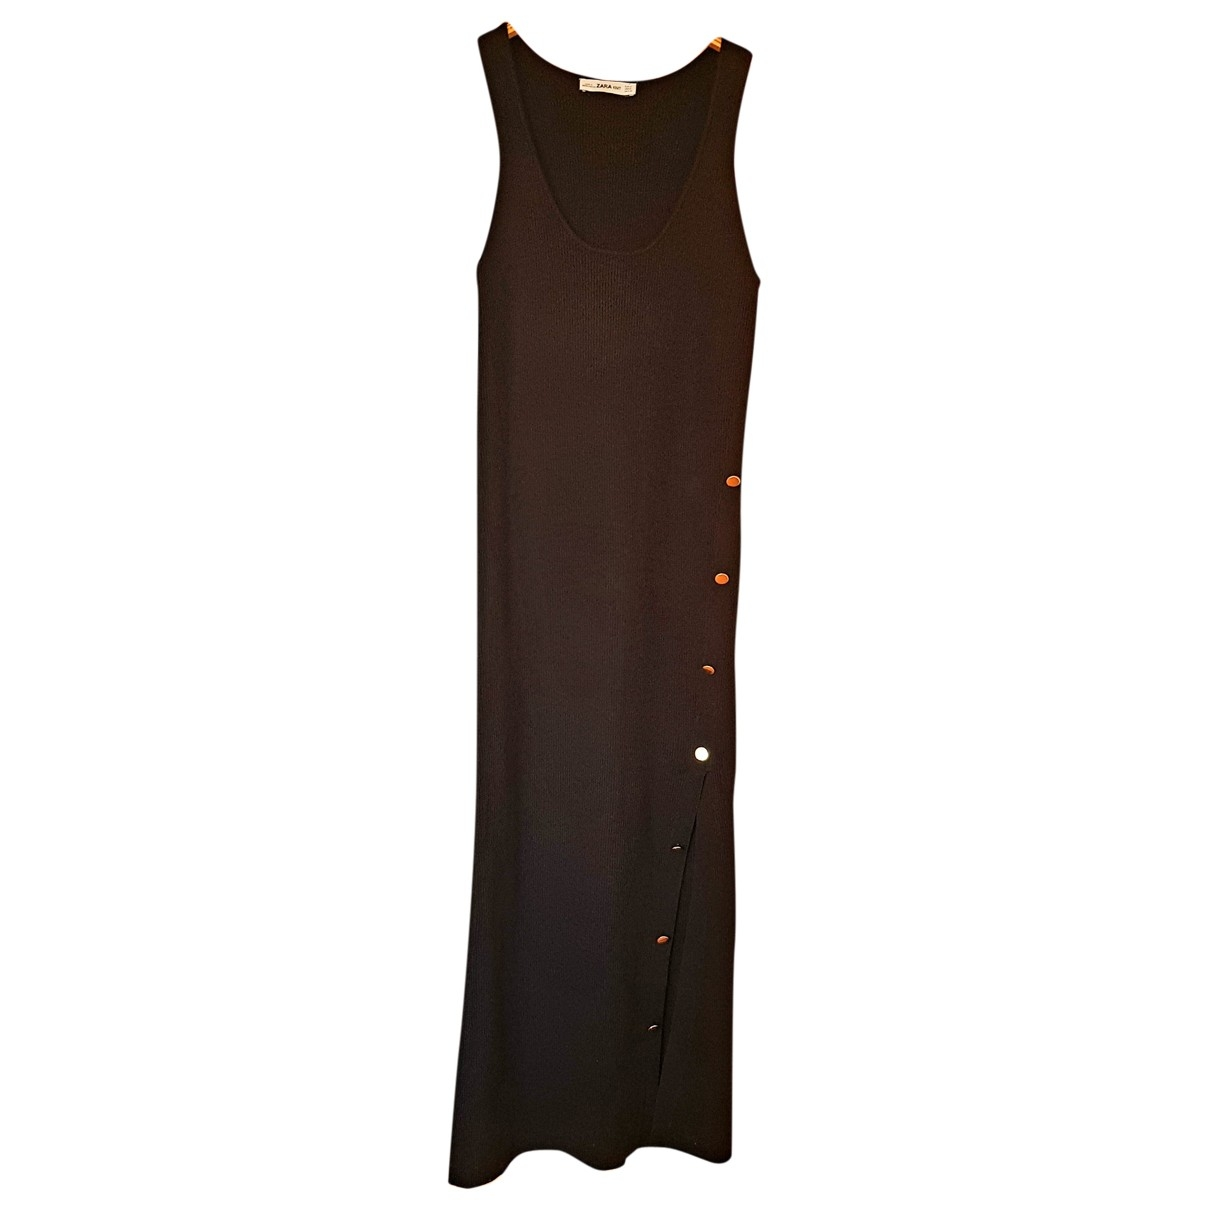 Zara \N Black Cotton dress for Women M International